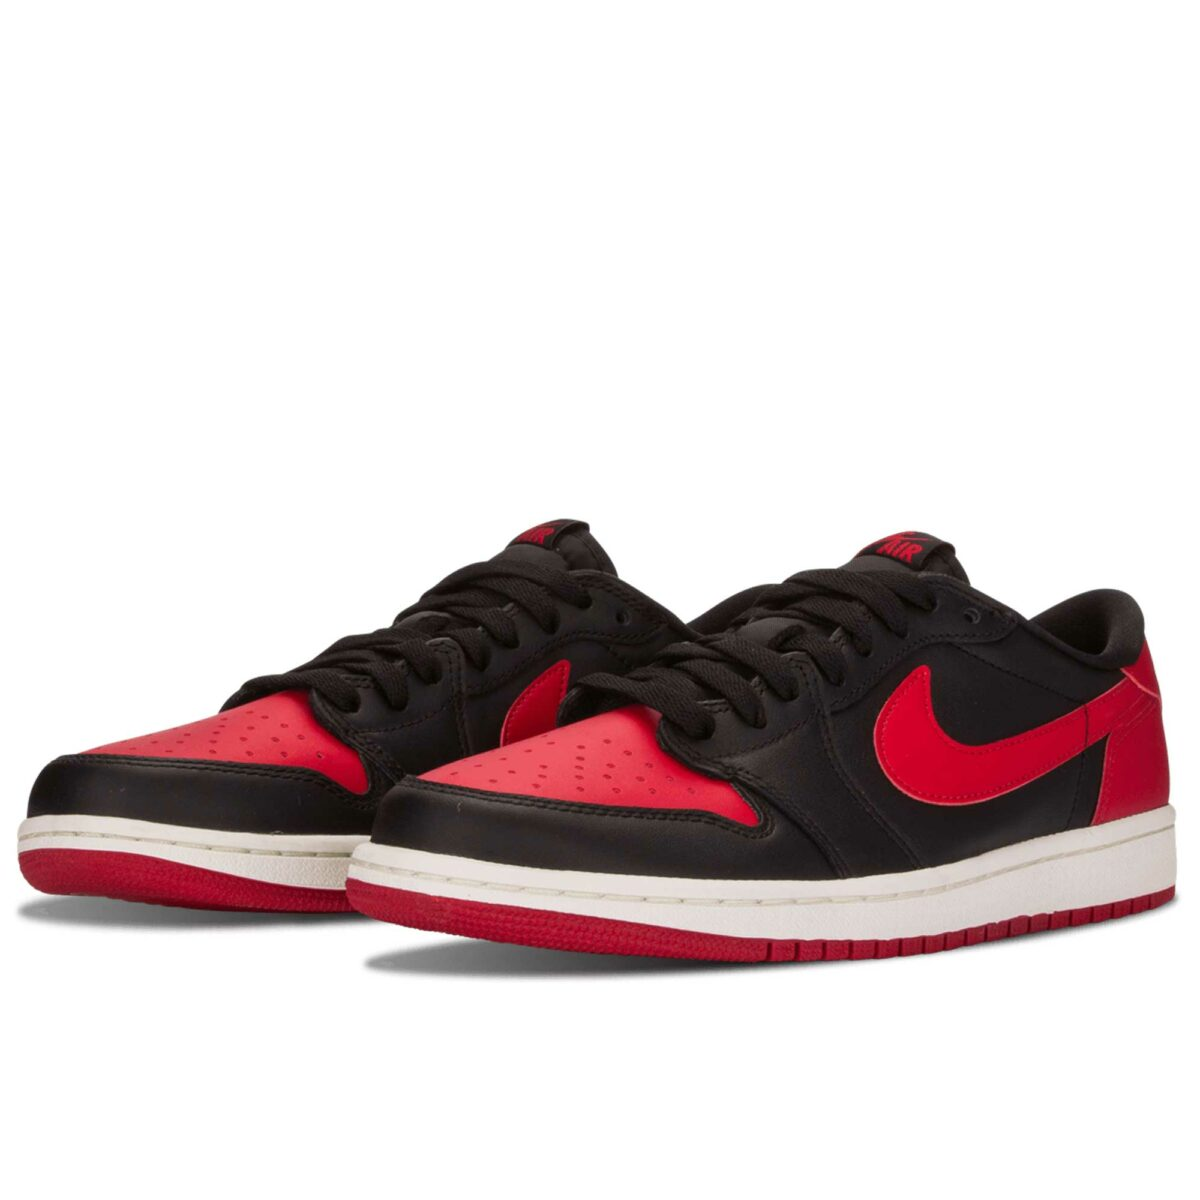 nike air Jordan 1 retro low og bred 705329_001 купить